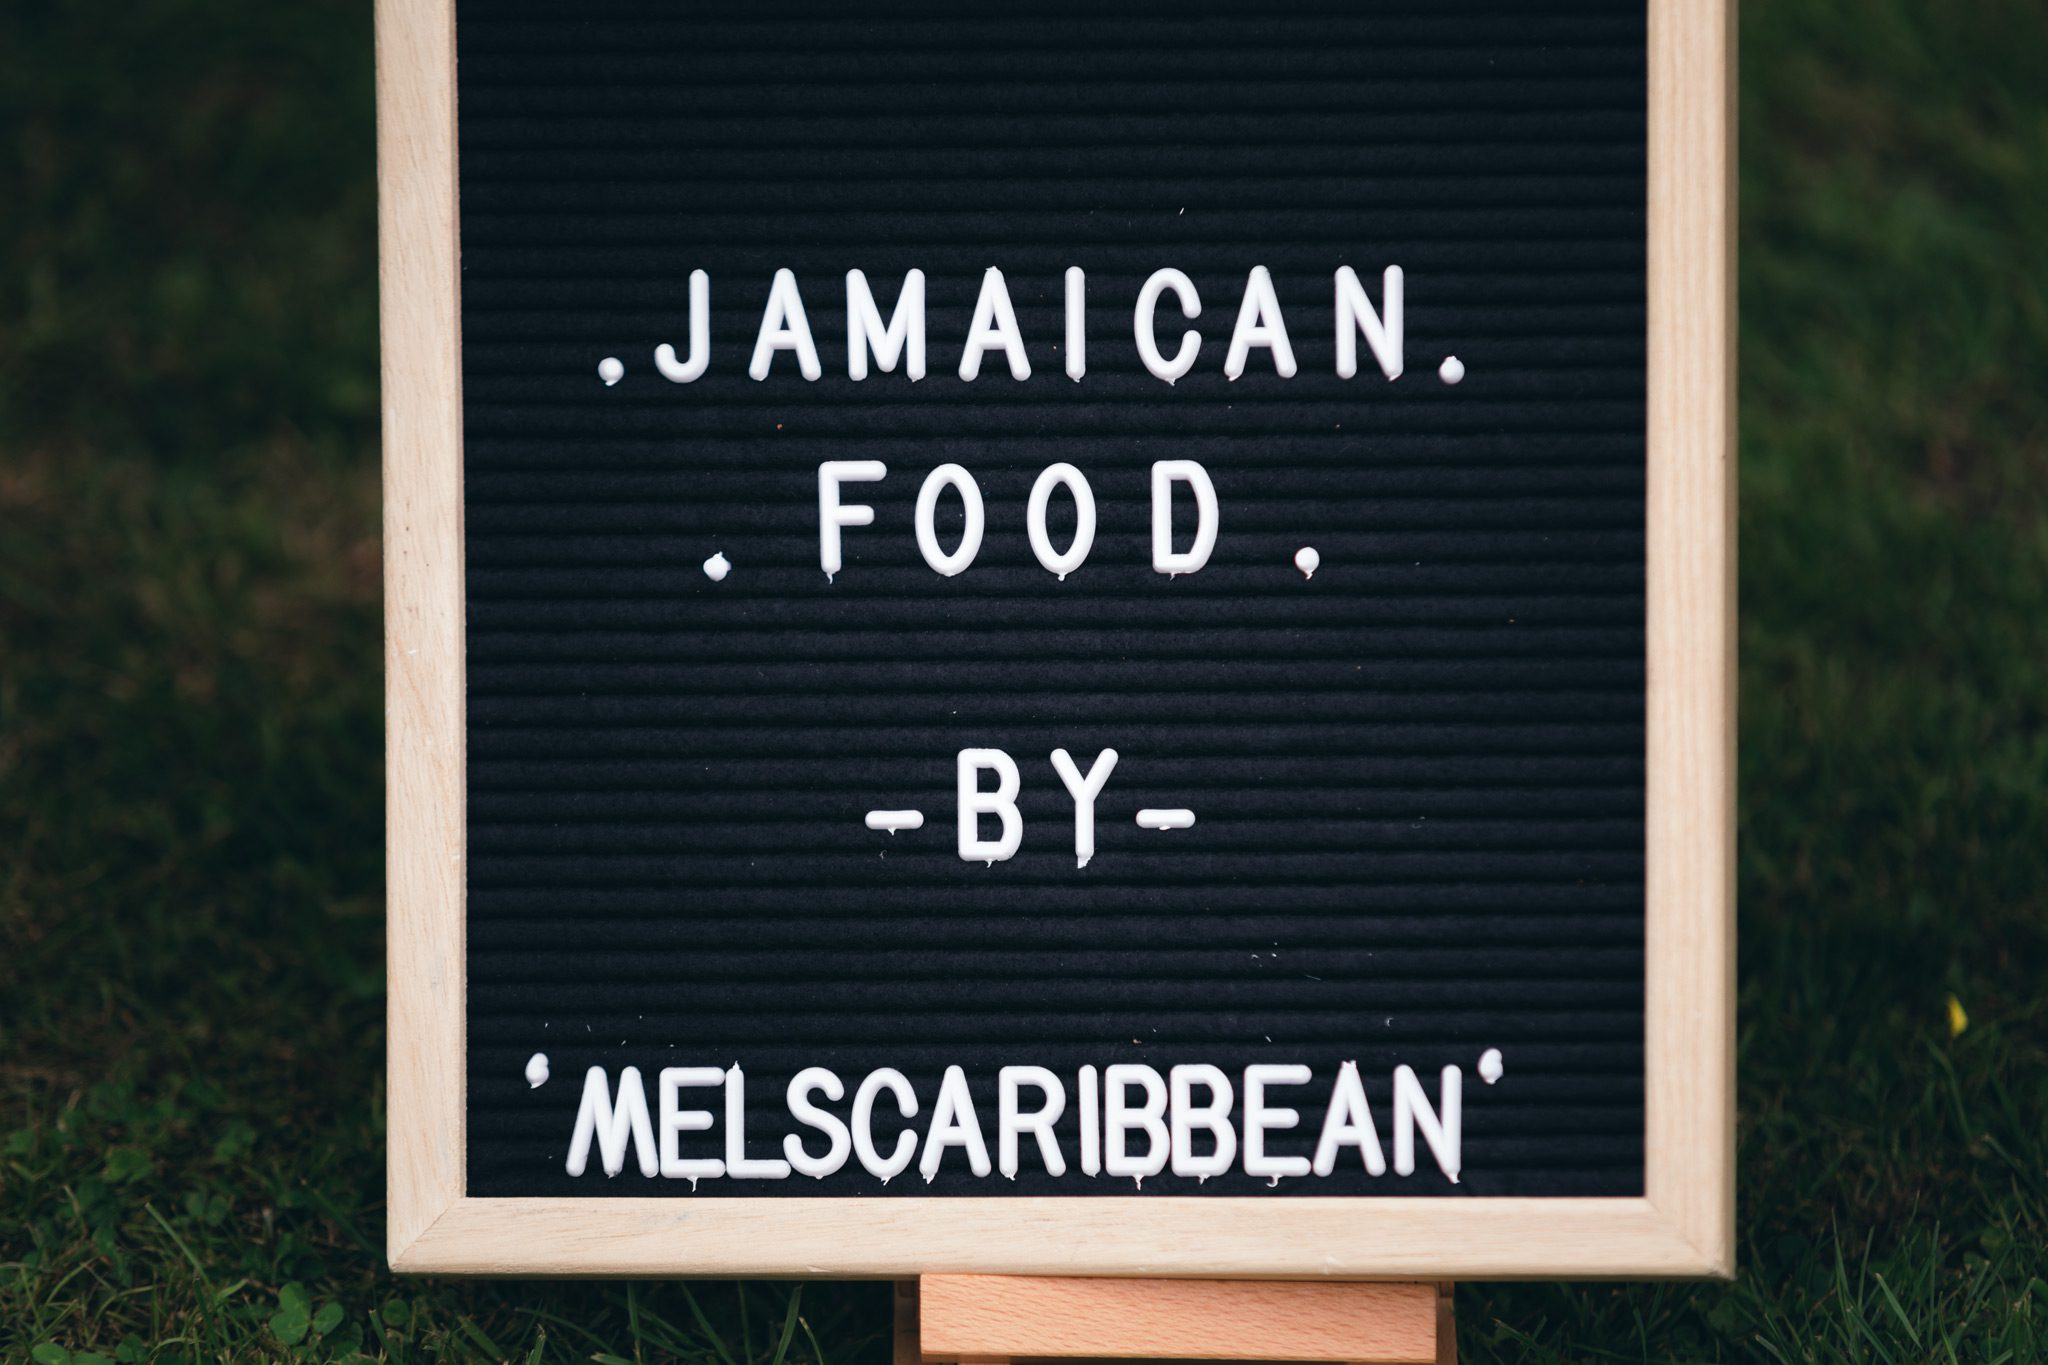 Jamaican food by Mel's Caribbean catering sign